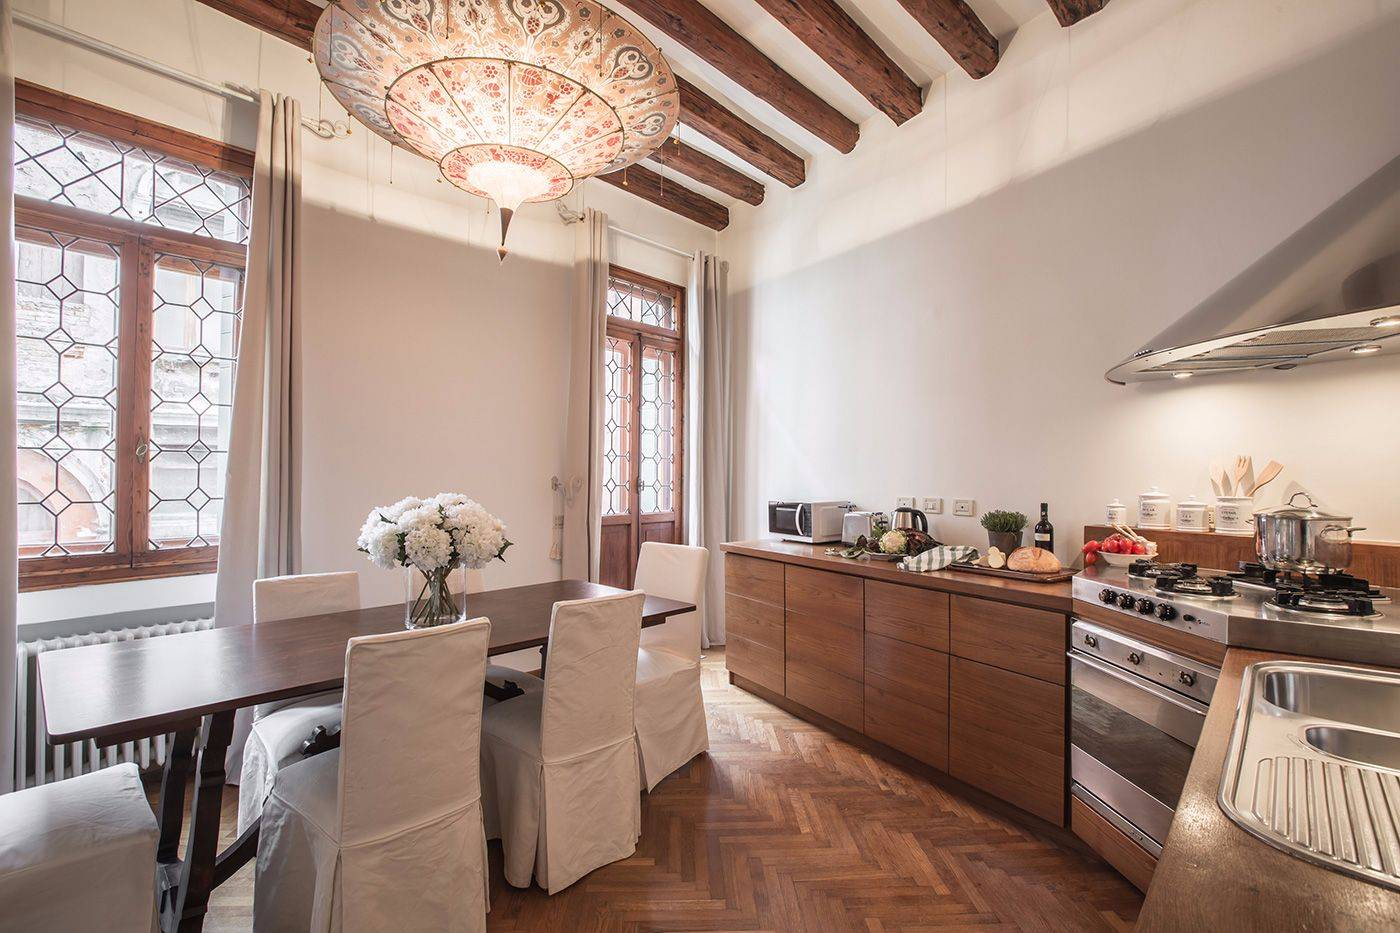 beautiful tailor made wooden kitchen with table for 6 people